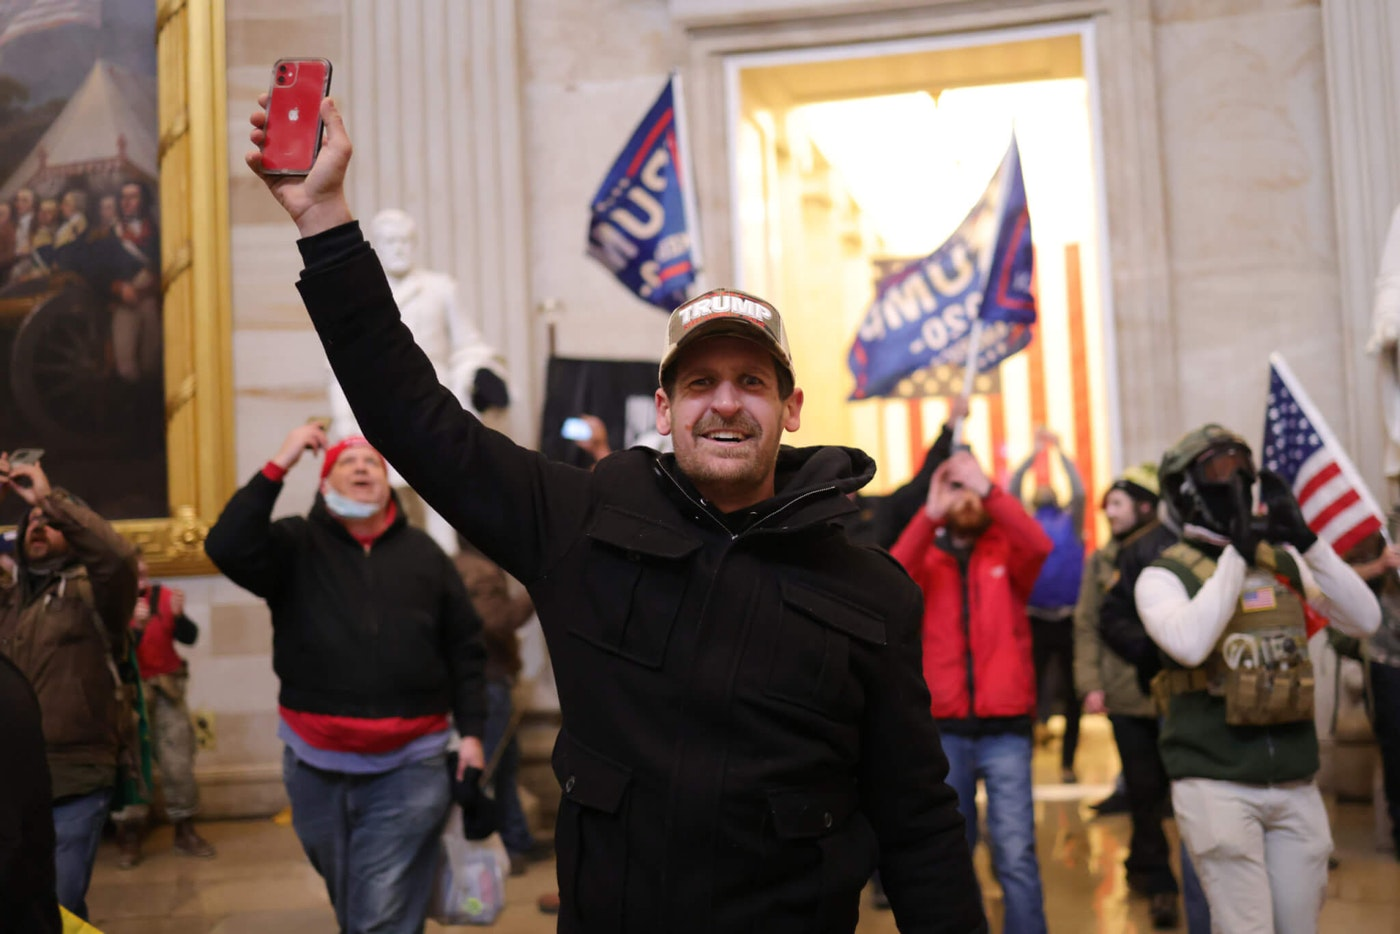 Rioters enter the U.S. Capitol Building on Jan. 6 in Washington, DC. Congress held a joint session to ratify President-elect Joe Biden's 306-232 Electoral College win over President Donald Trump. A group of Republican senators said they would reject the Electoral College votes of several states unless Congress appointed a commission to audit the election results. (Photo by Win McNamee/Getty Images)